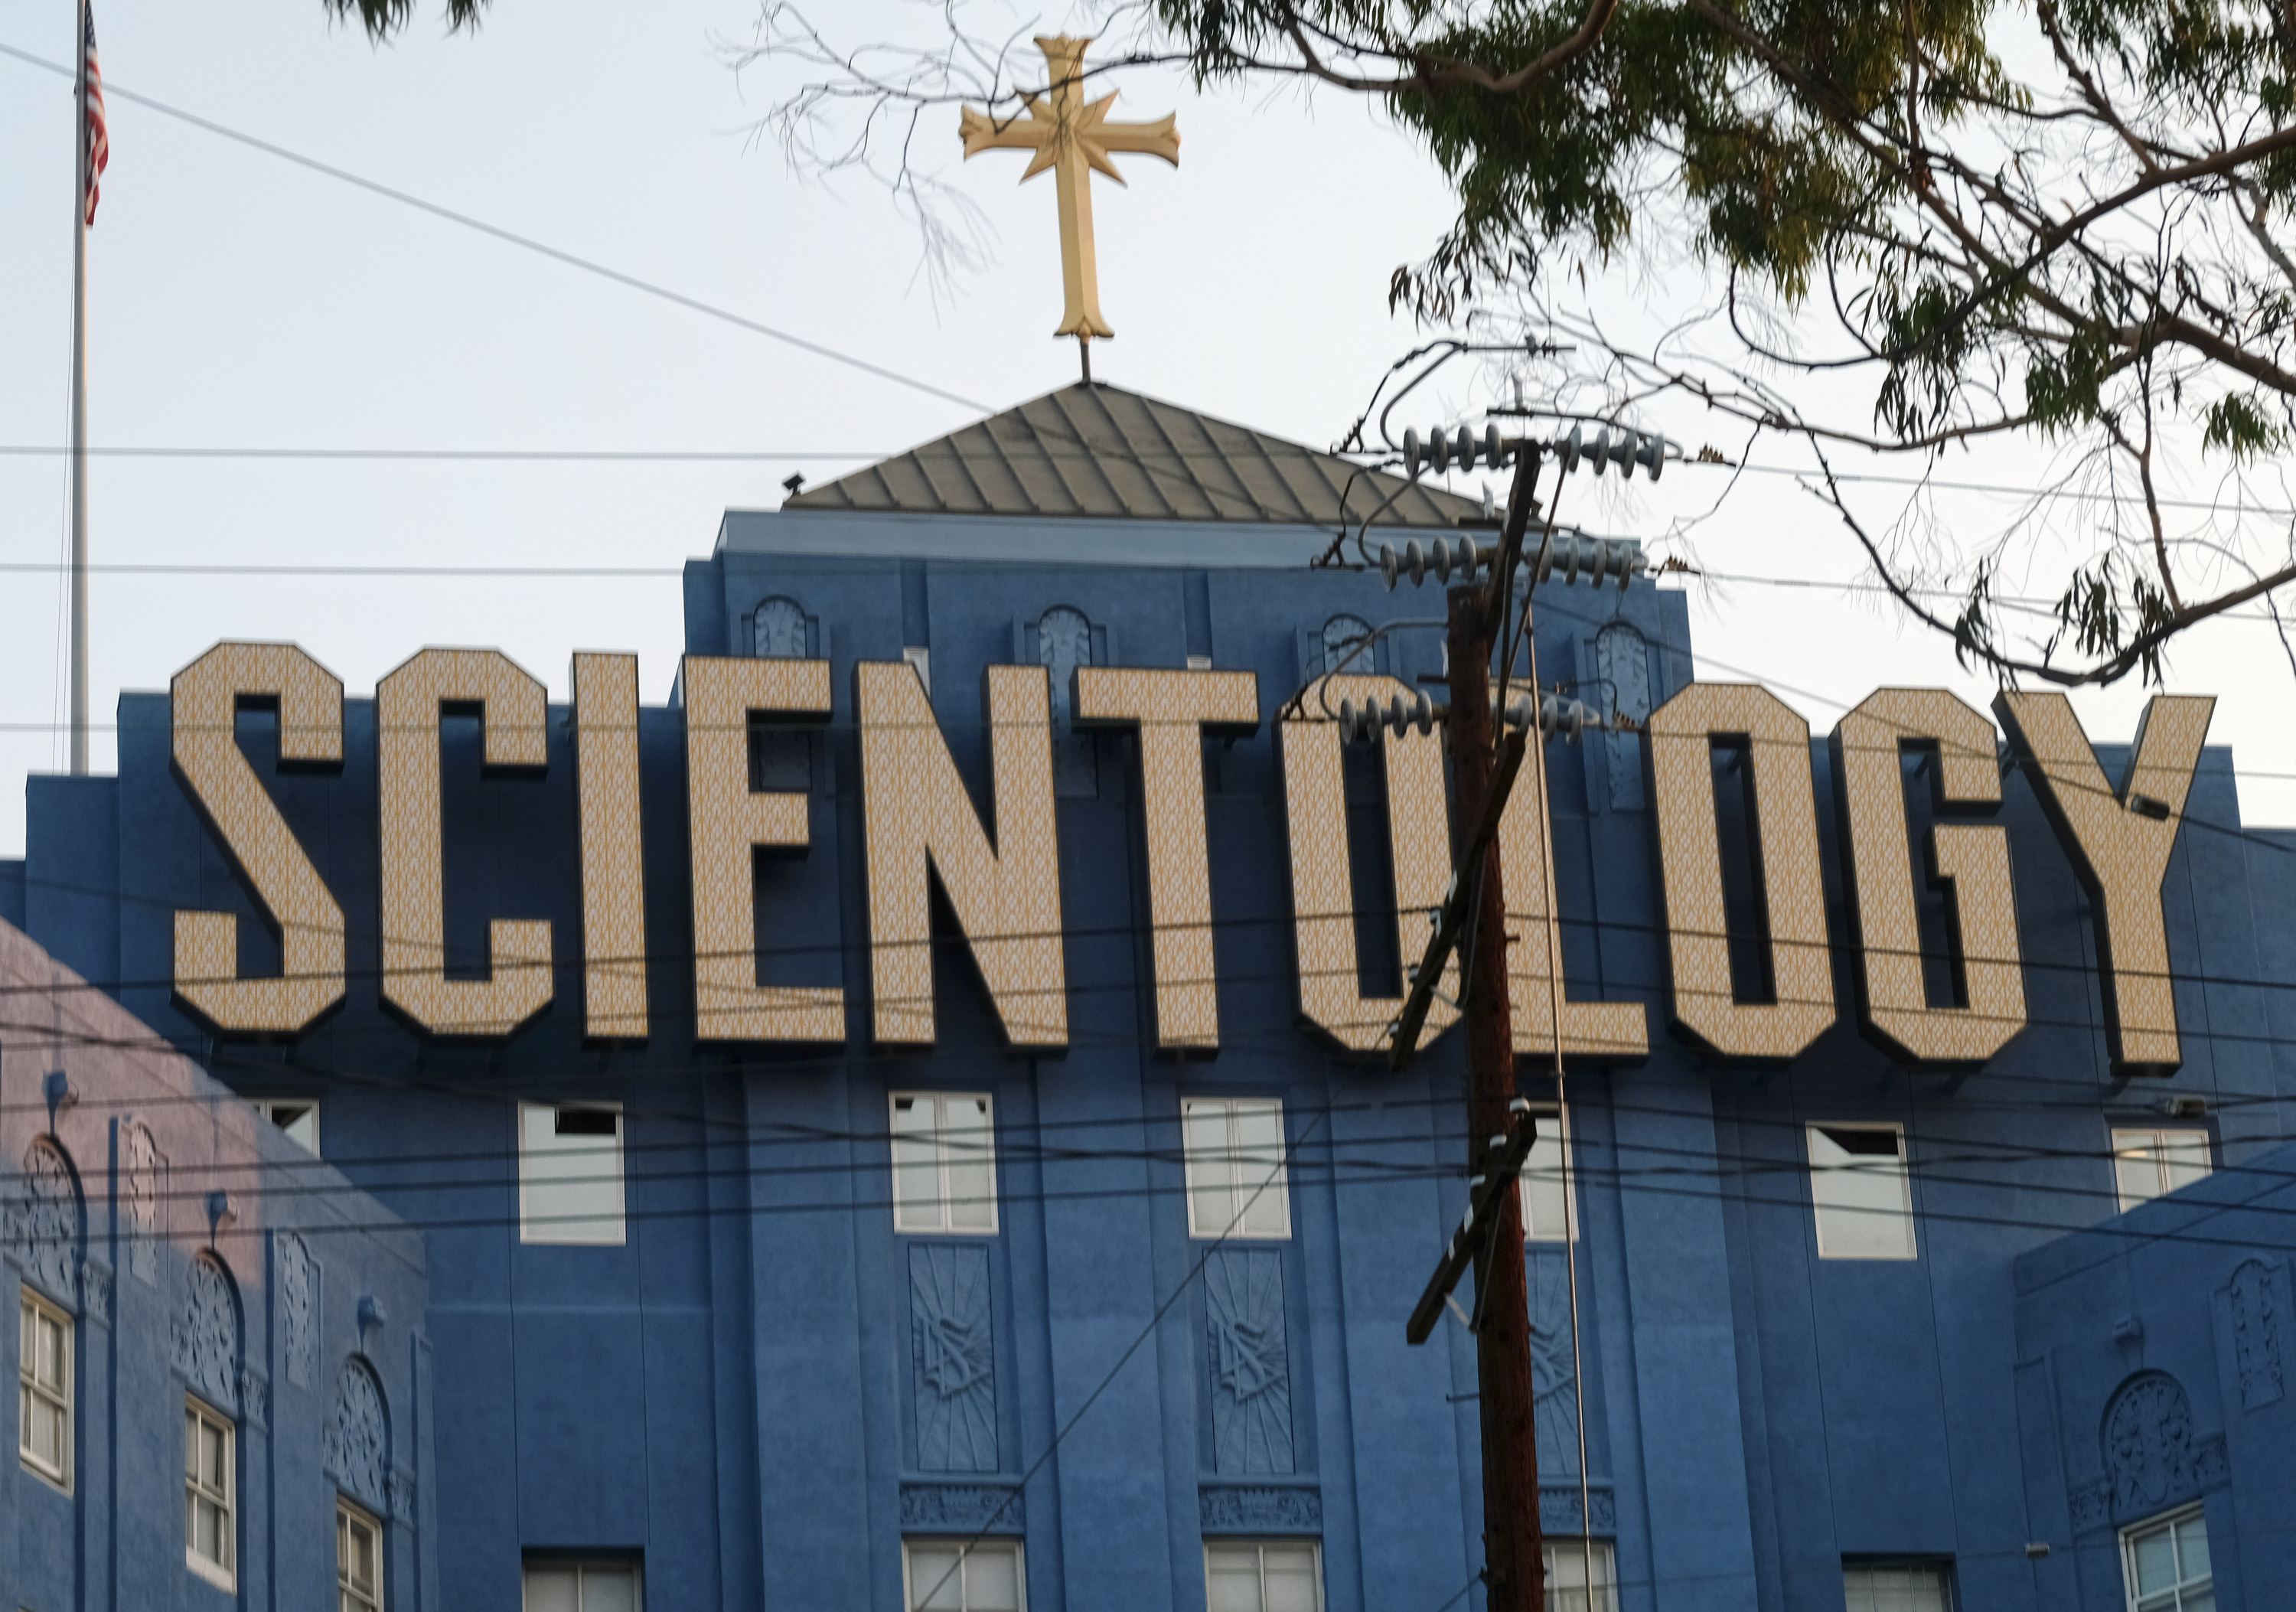 How Scientology and the CIA waged war 40 years ago - The